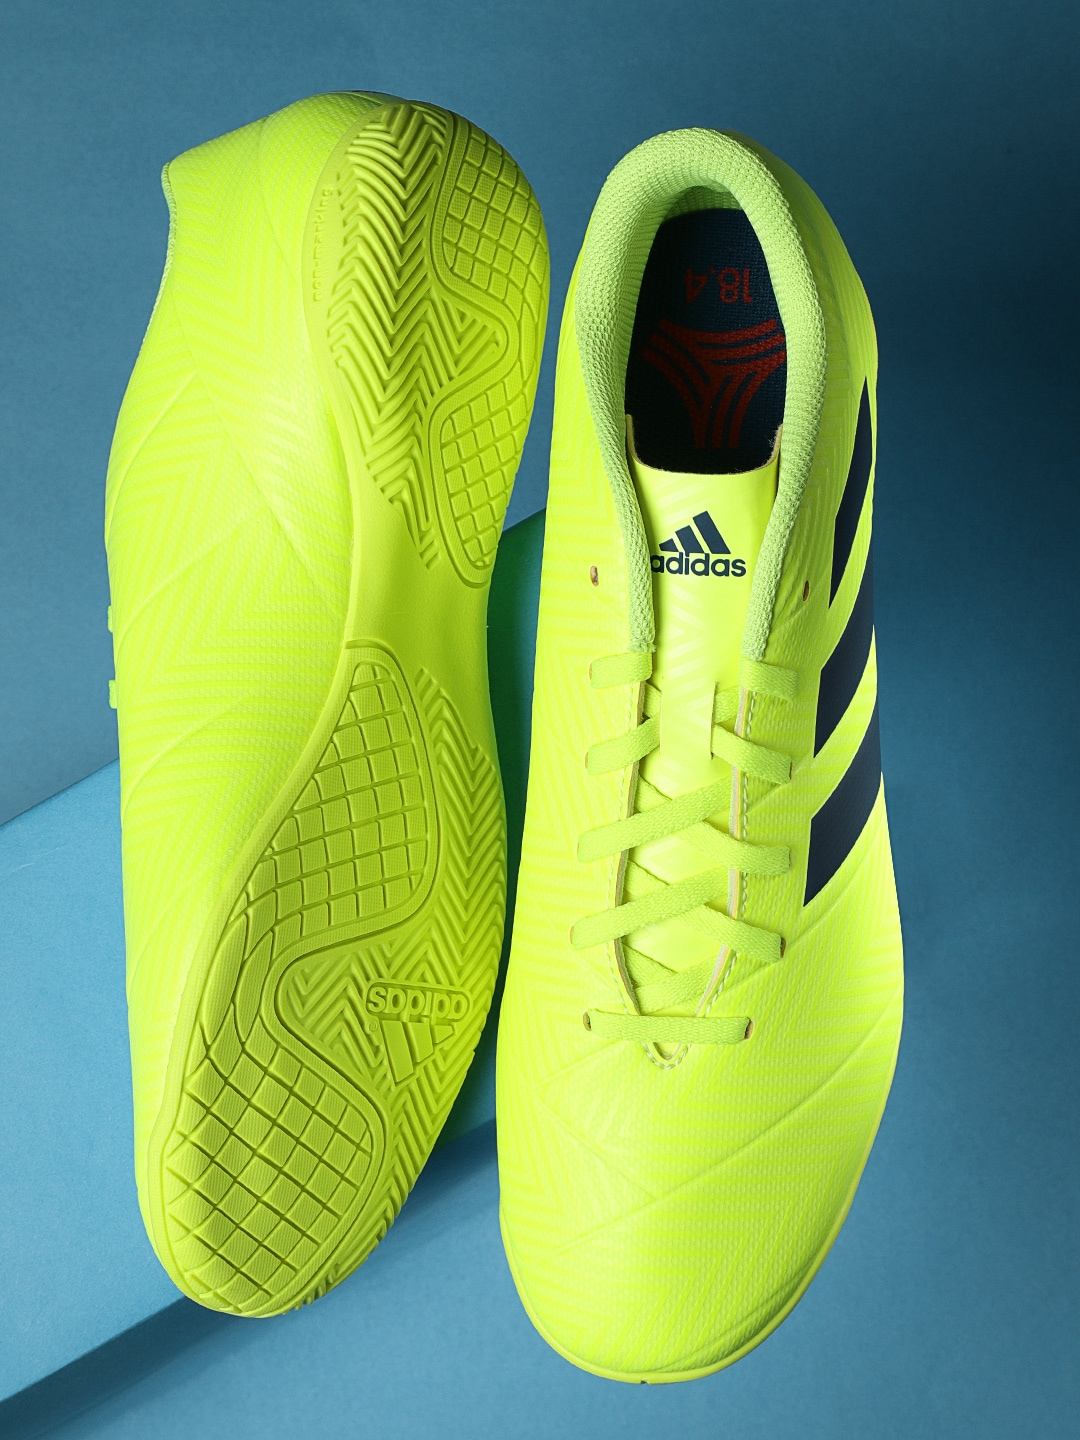 a56c686bb20 Football Shoes - Buy Football Studs Online for Men   Women in India